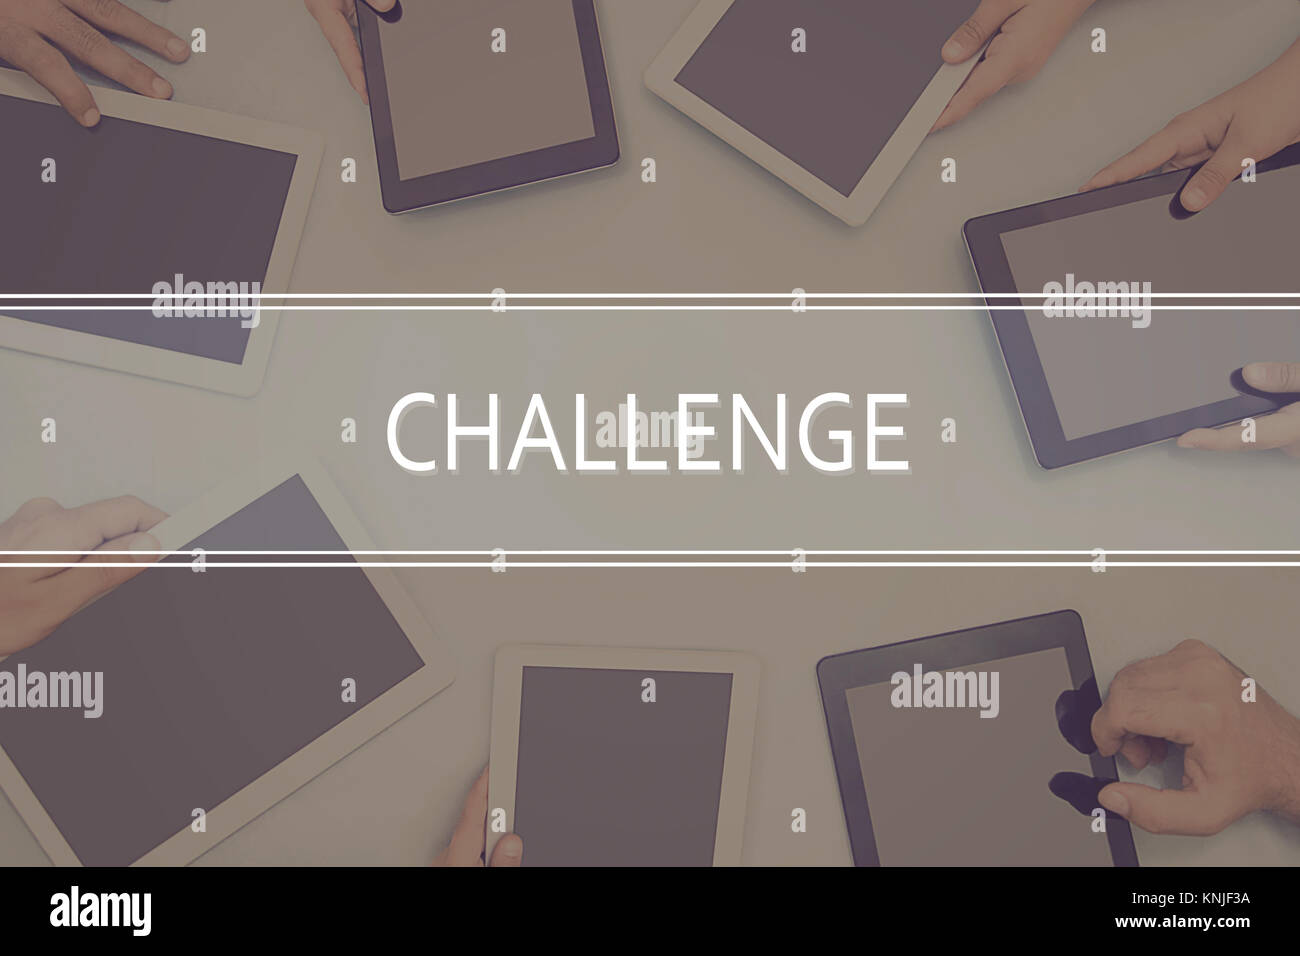 CHALLENGE CONCEPT Business Concept. - Stock Image